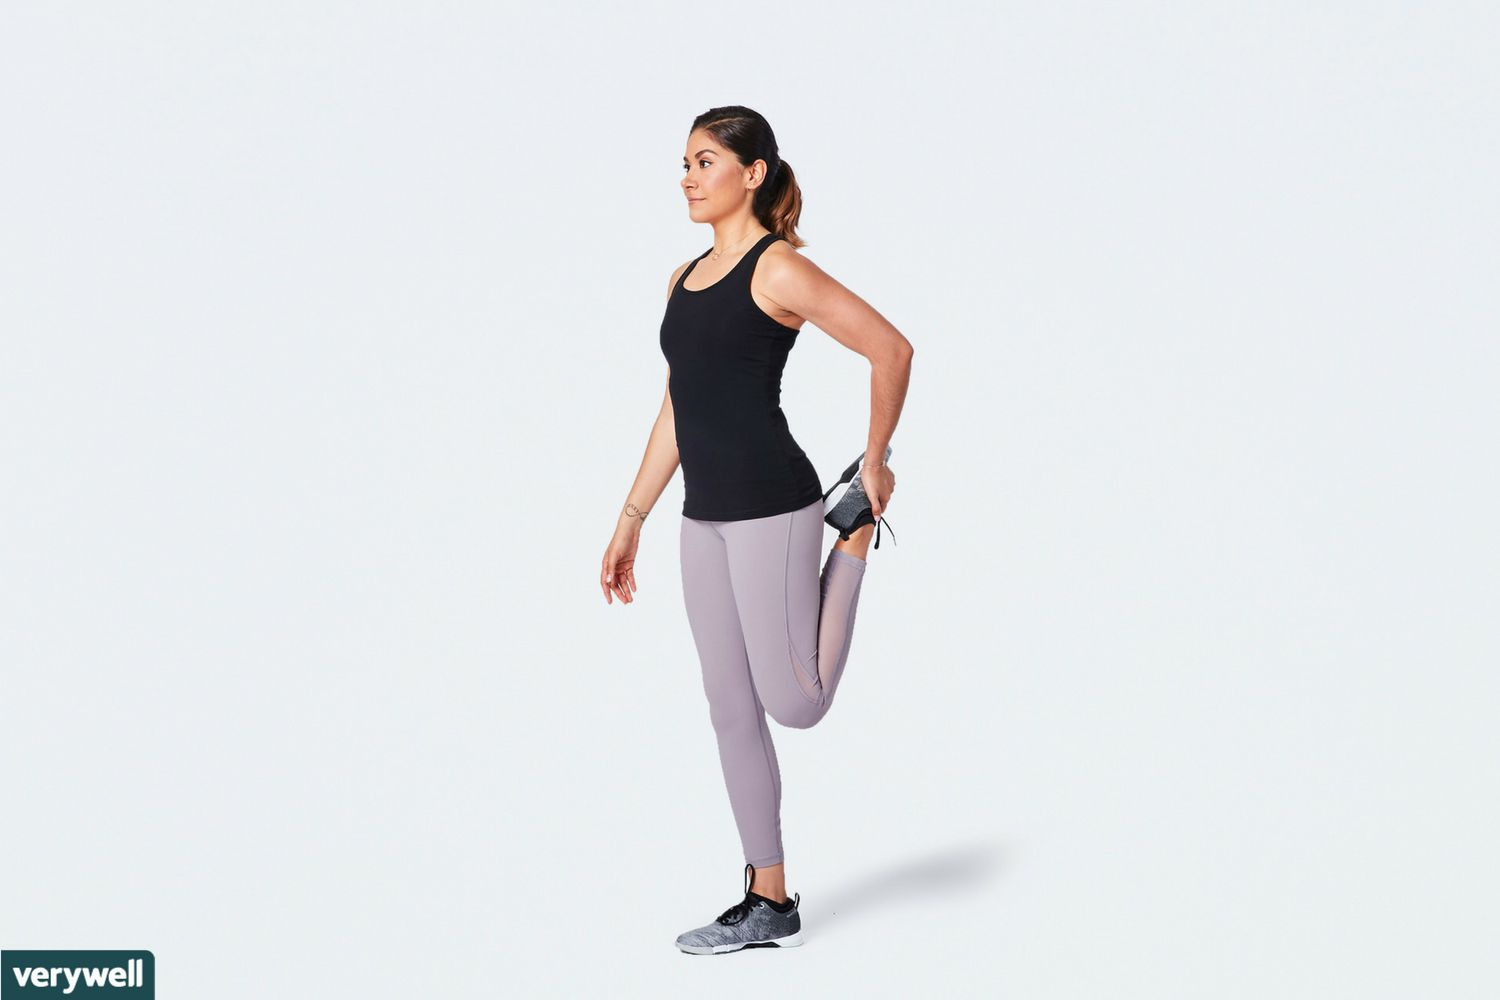 8 Relaxing Total Body Stretches